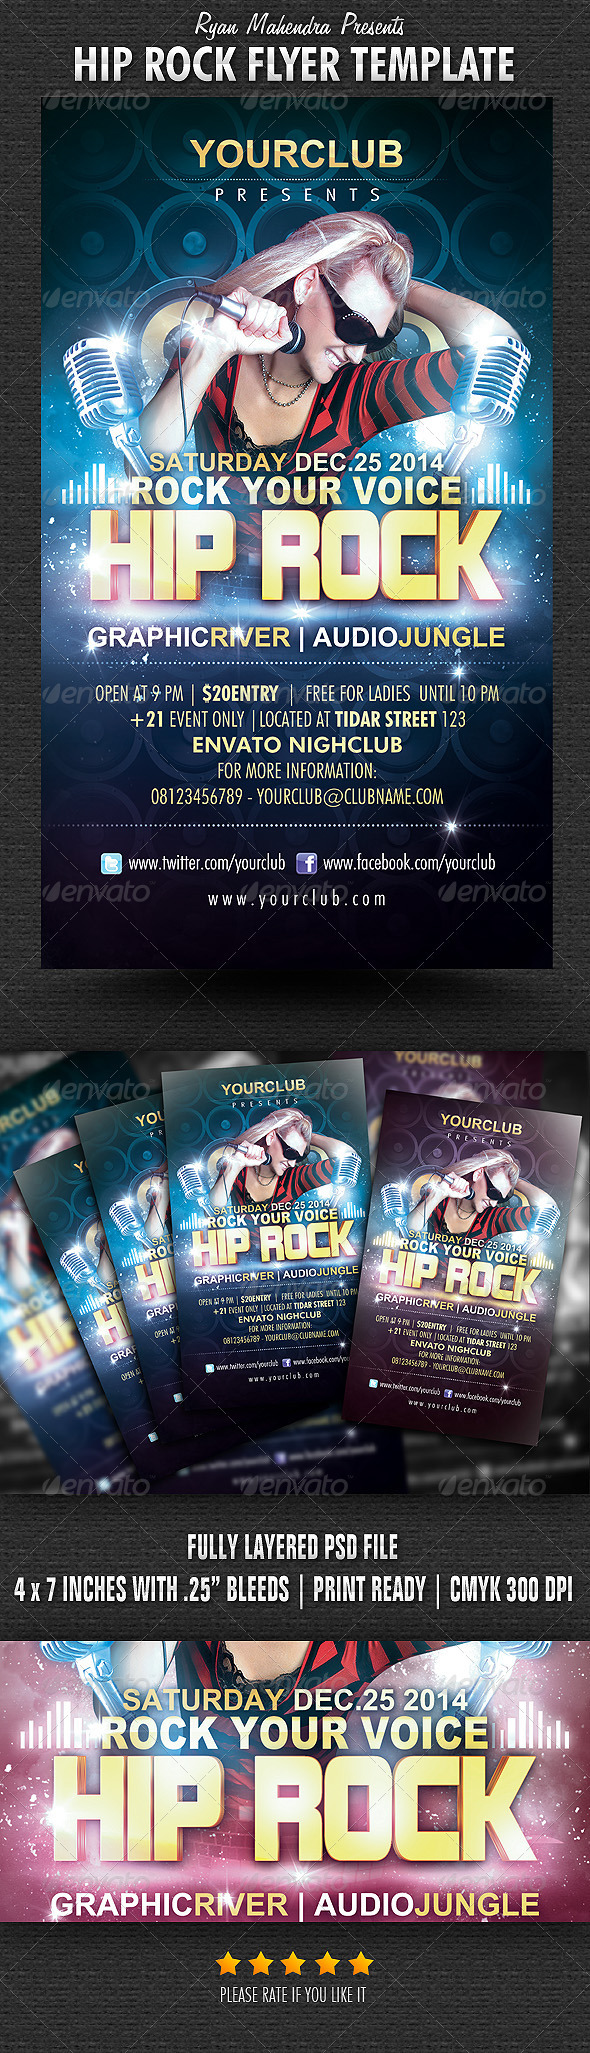 Hip Rock Flyer Template - Flyers Print Templates